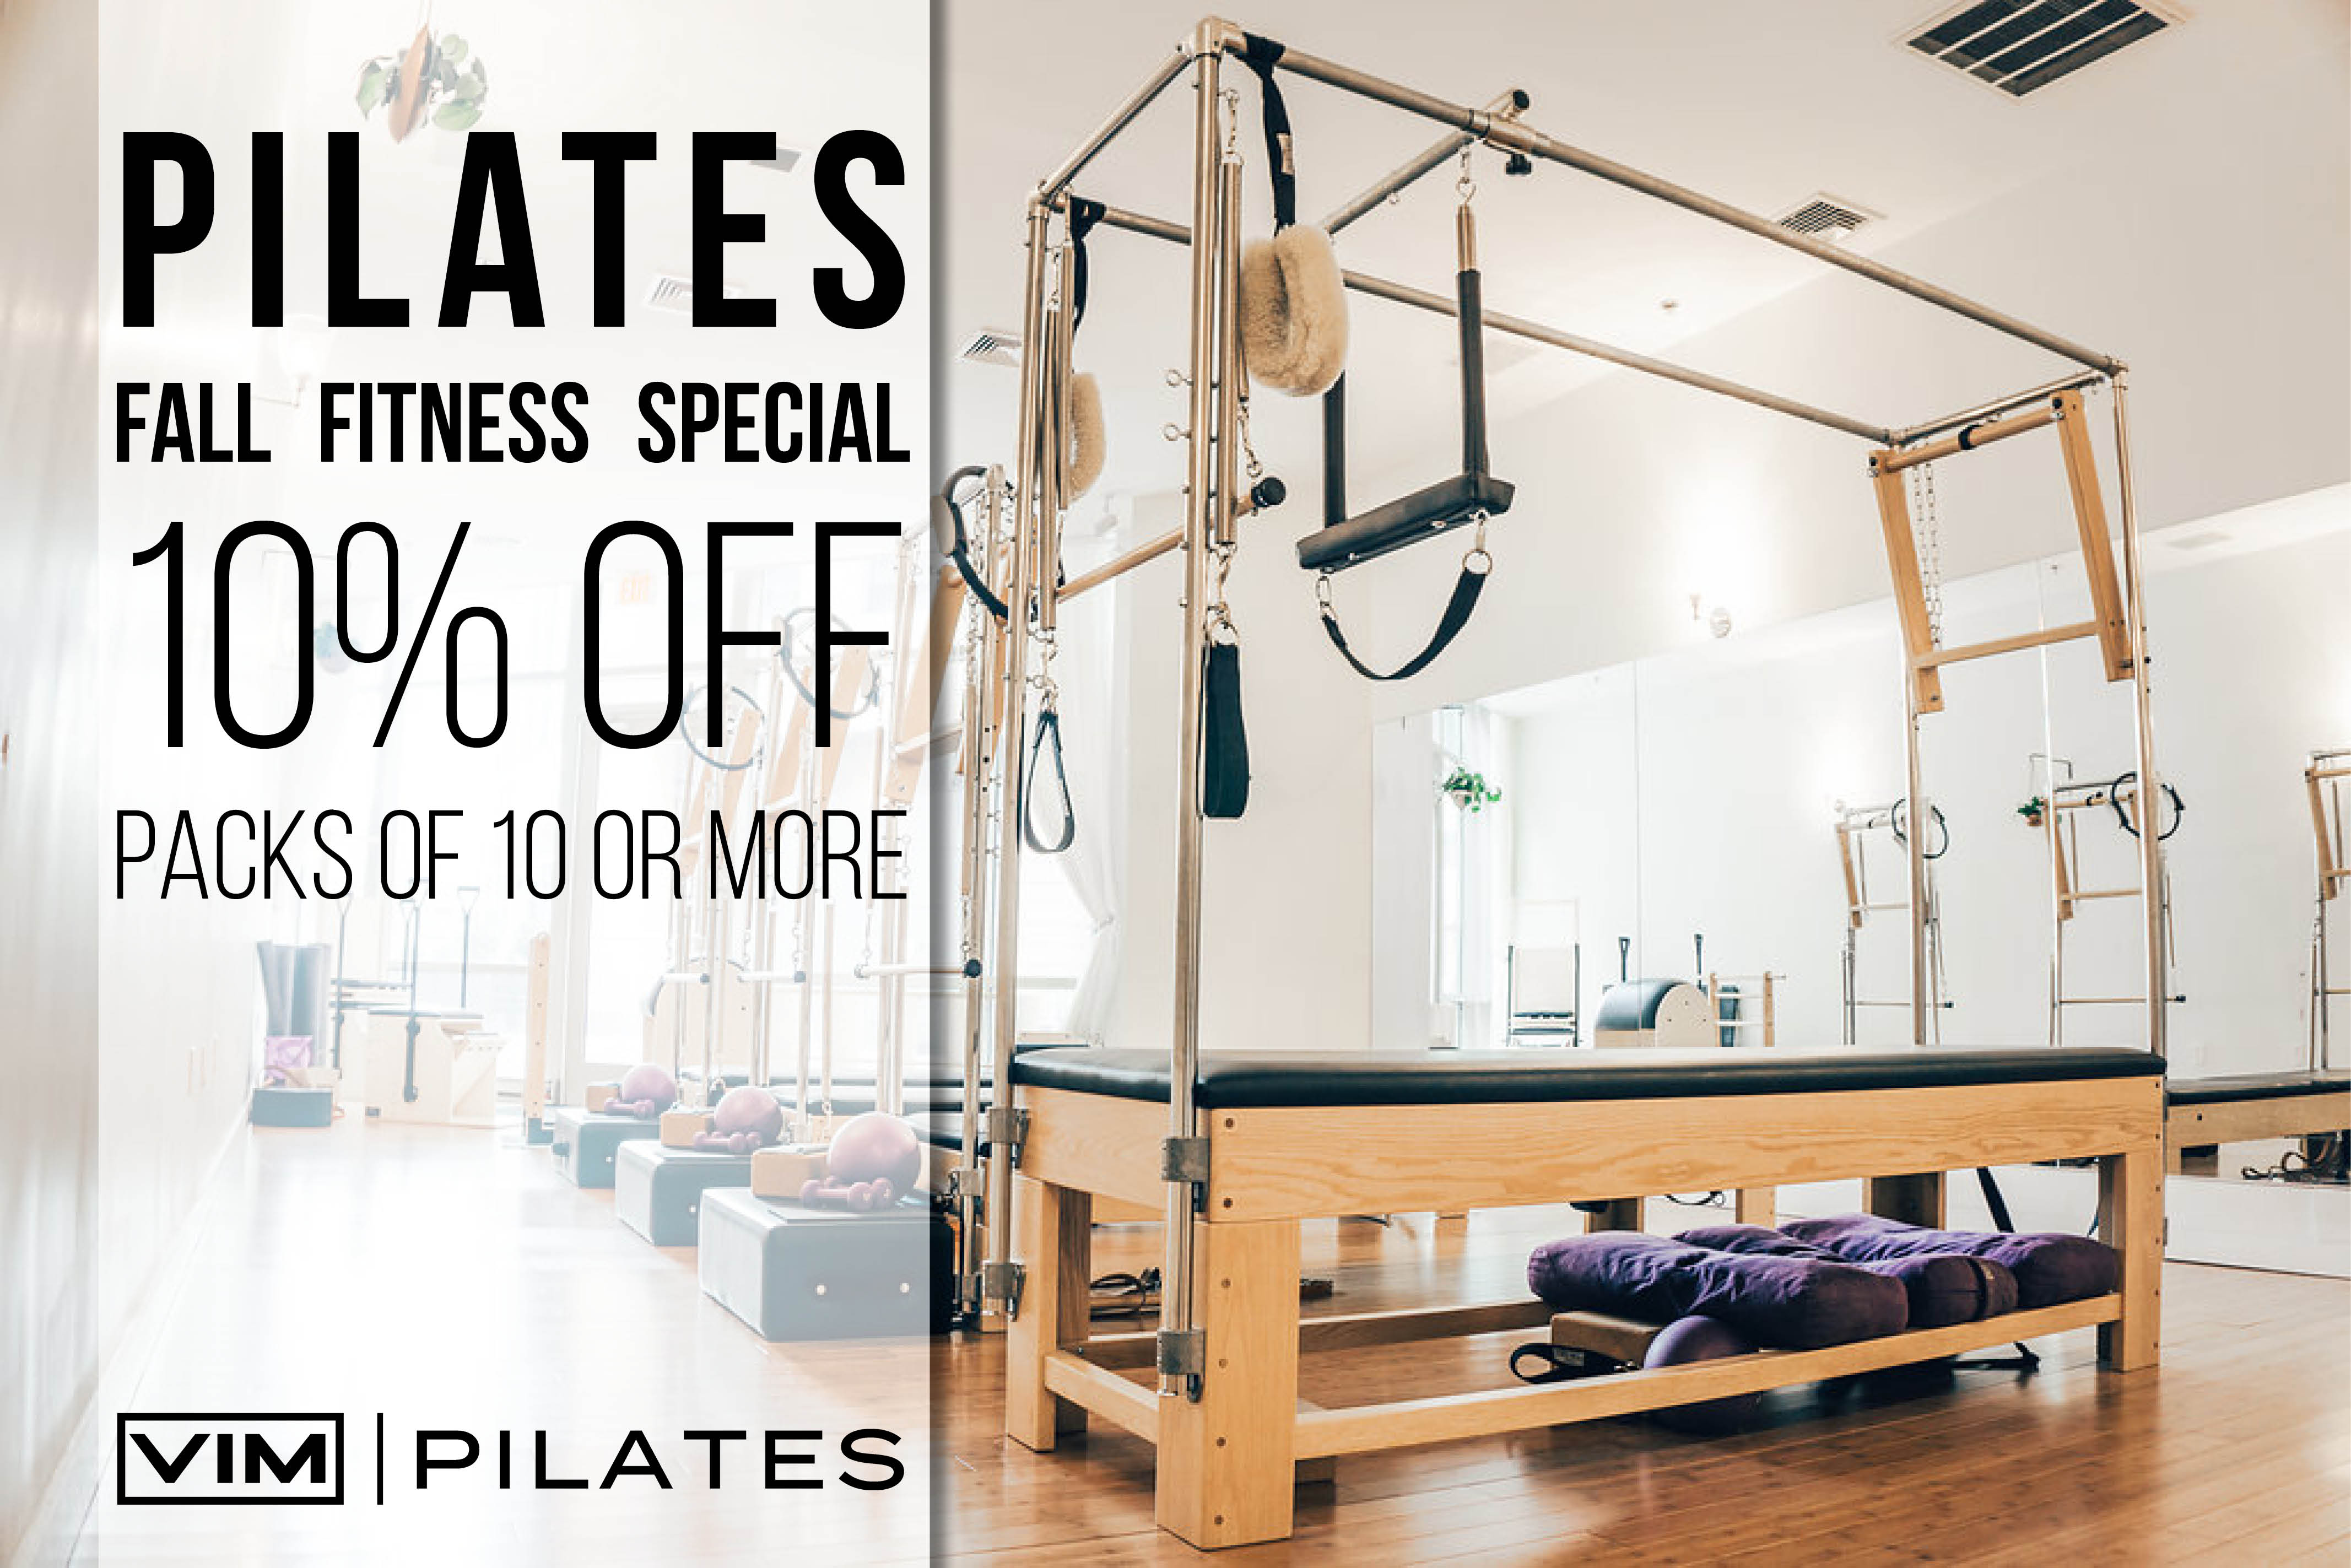 Pilates Fall Fitness Special